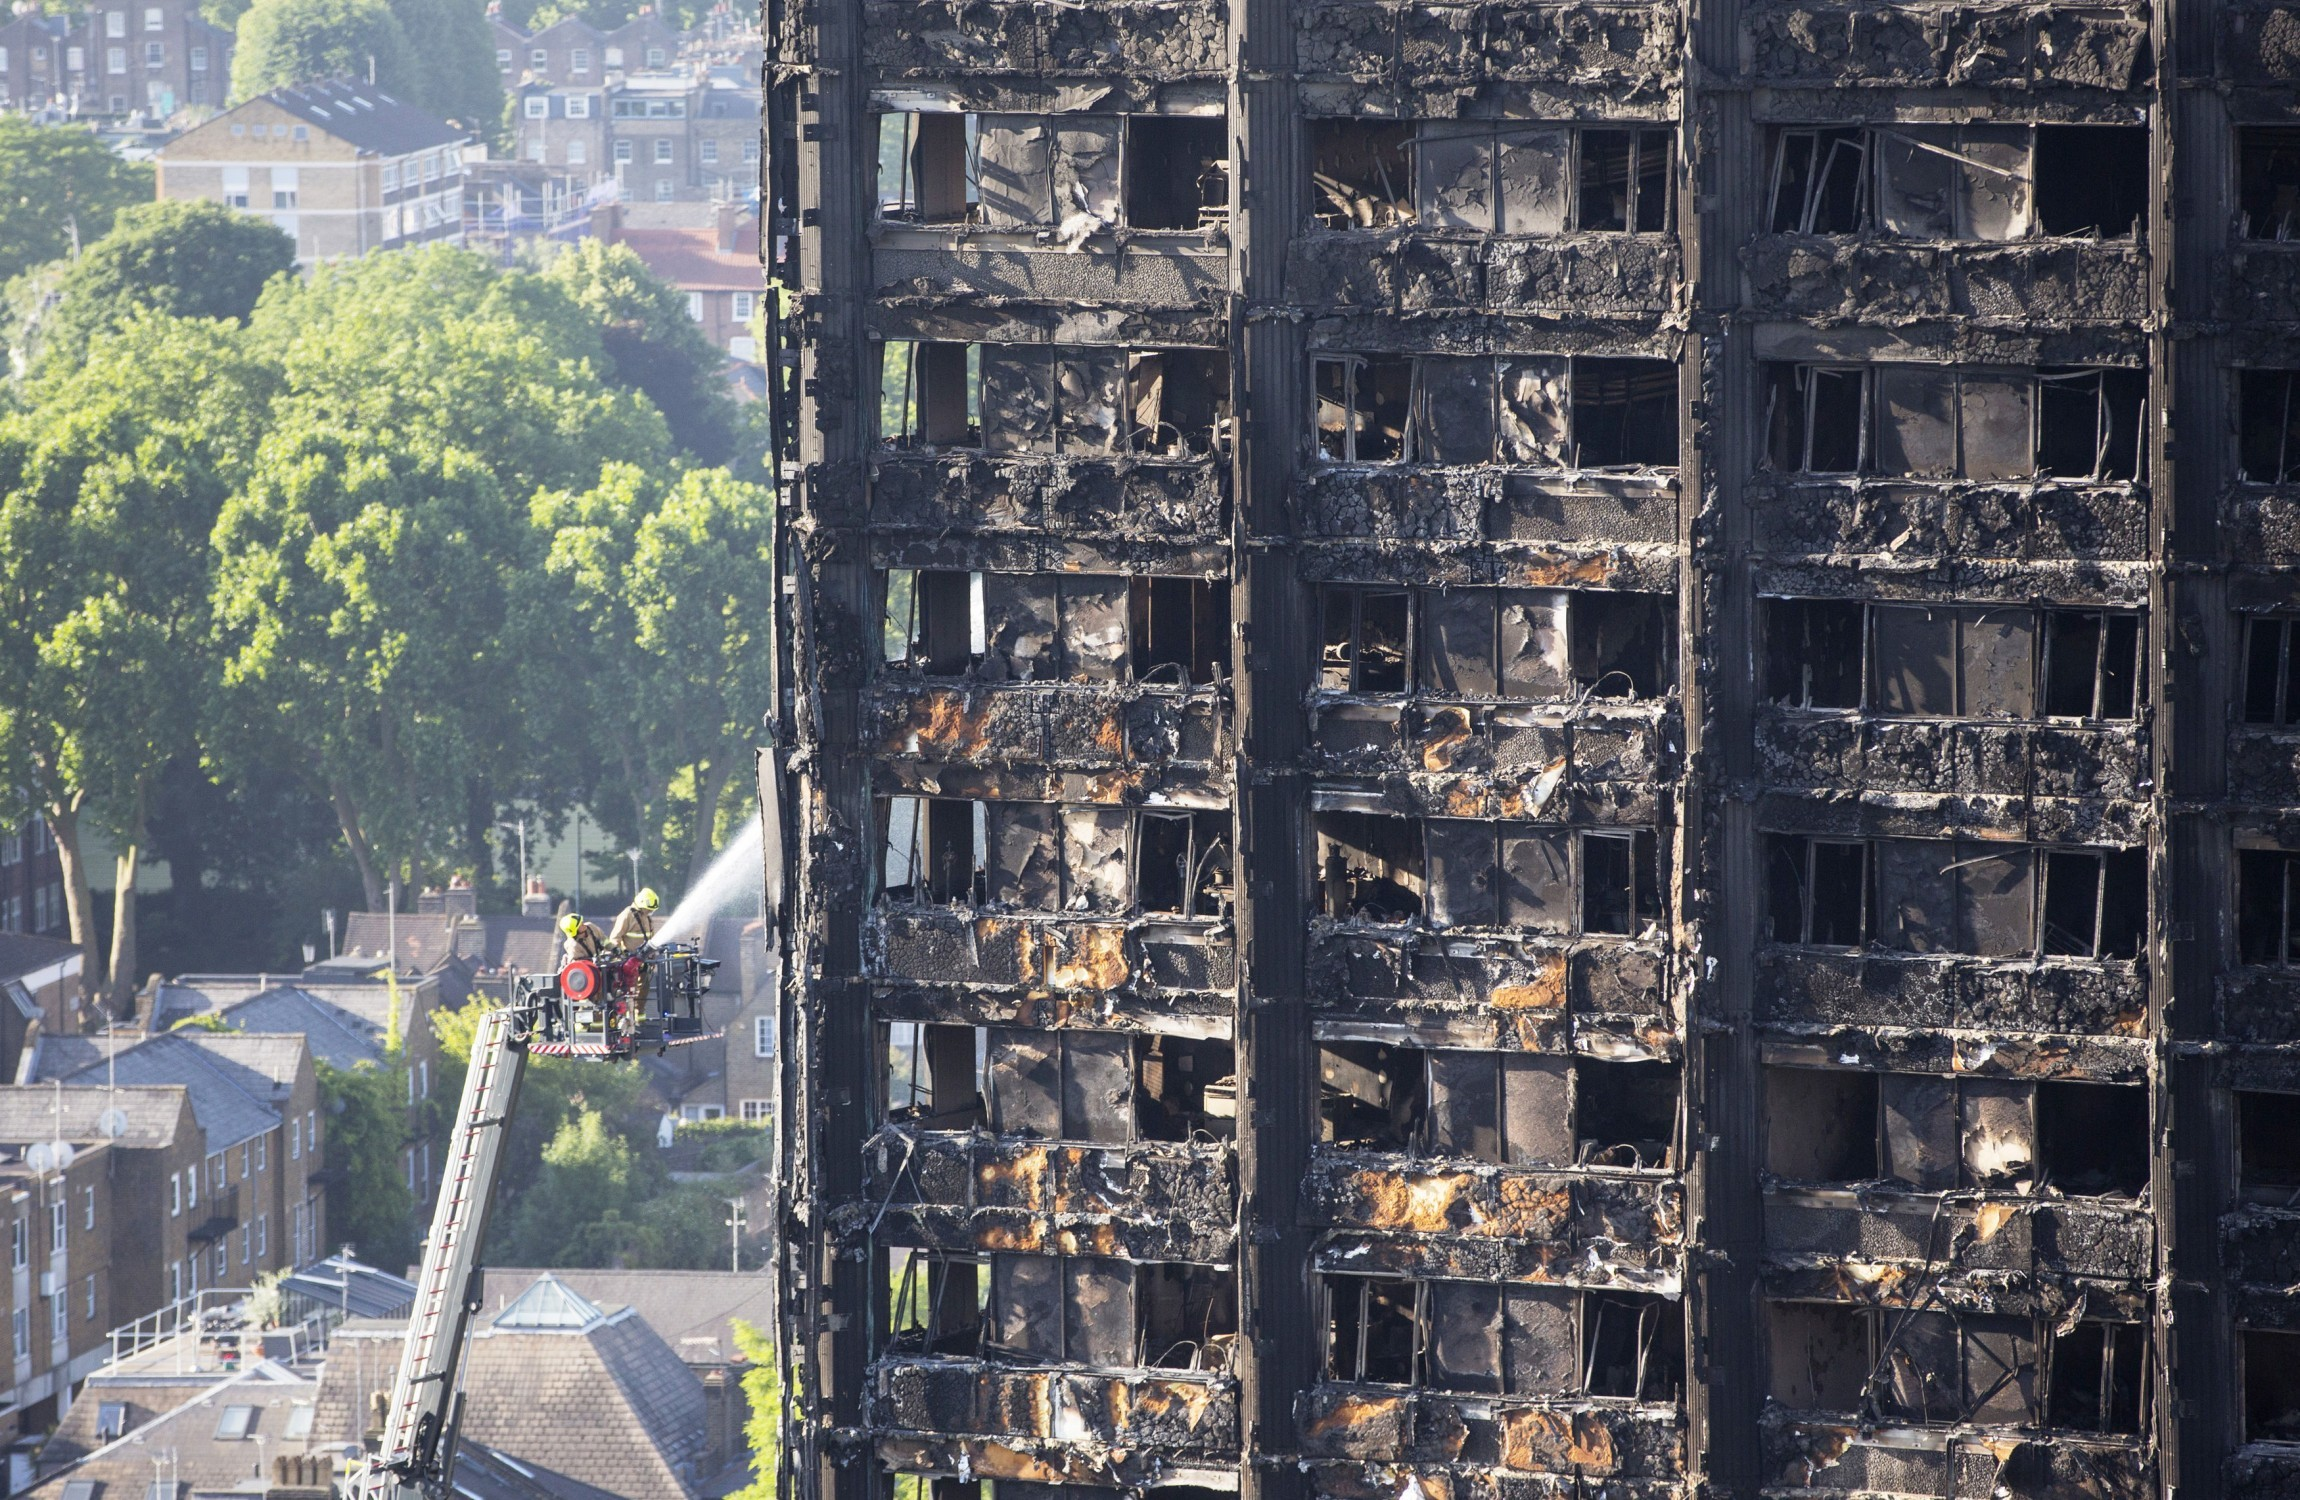 At Least 58 People Missing, 'Presumably Dead' After London Grenfell Tower Fire